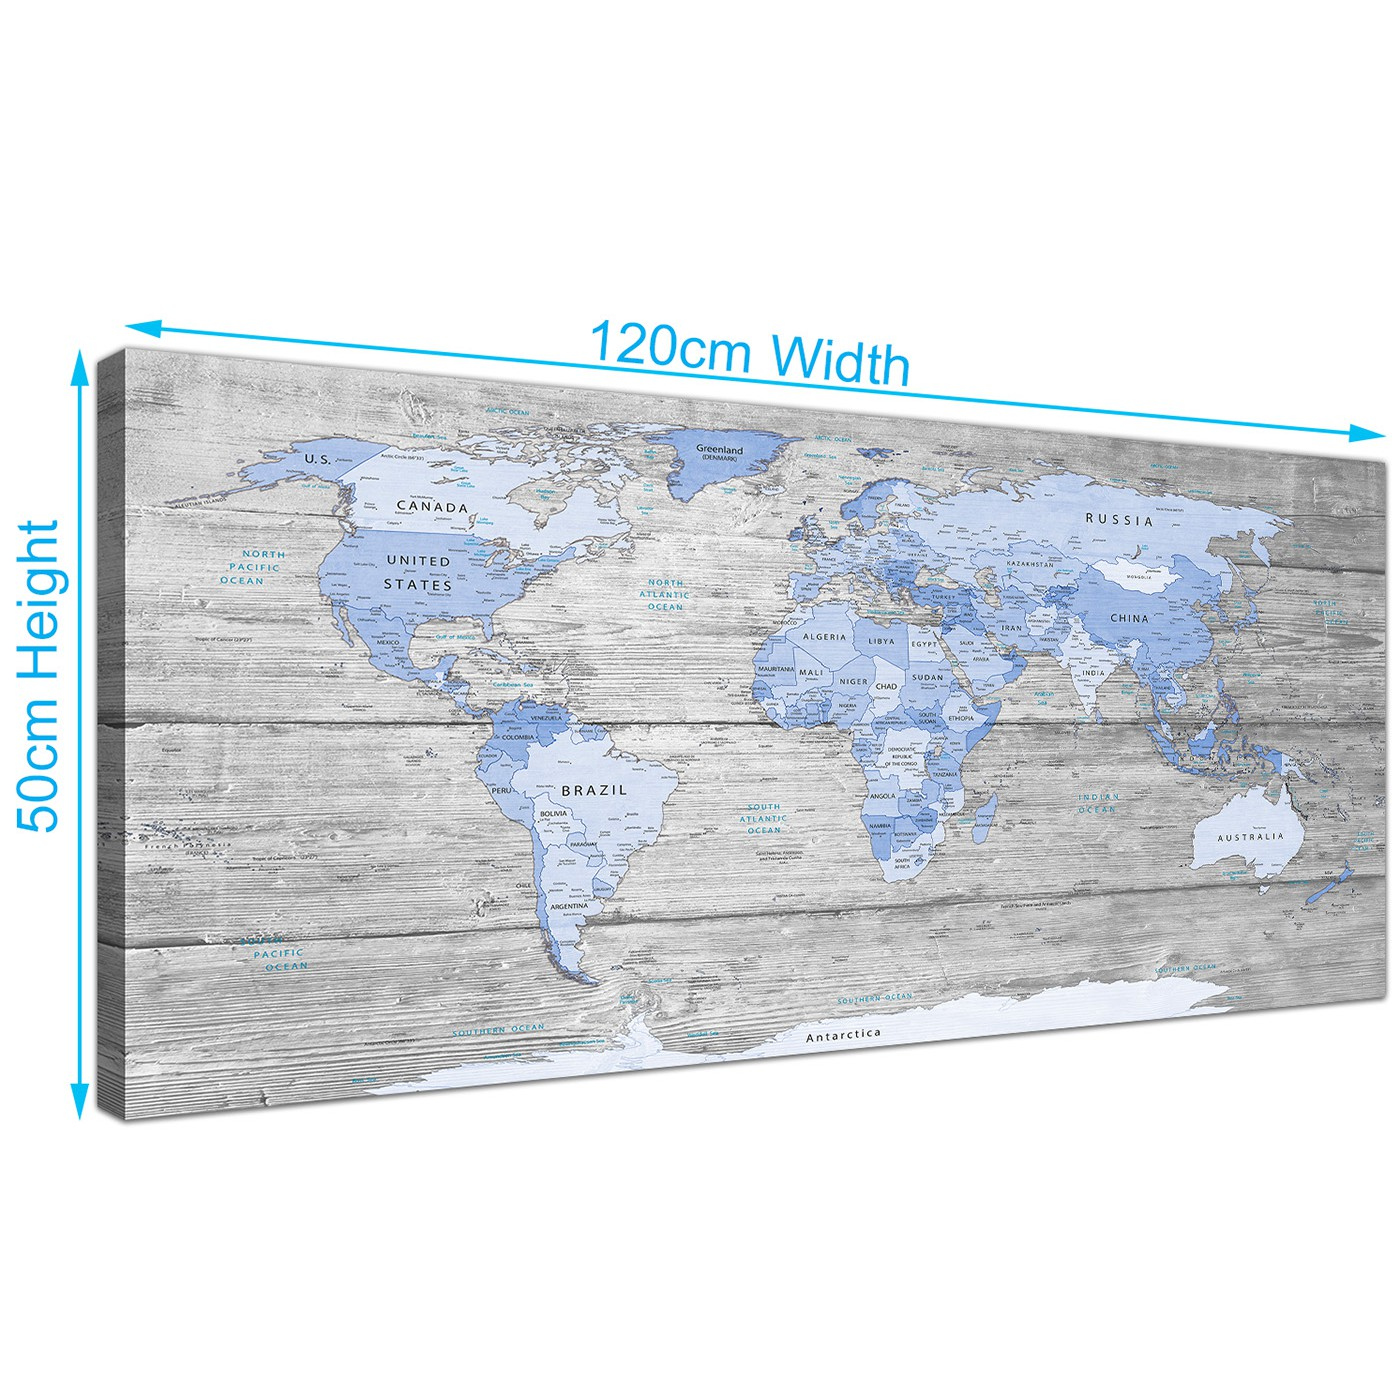 Large blue grey map of world atlas maps canvas modern 120cm wide 1303 display gallery item 4 gumiabroncs Images